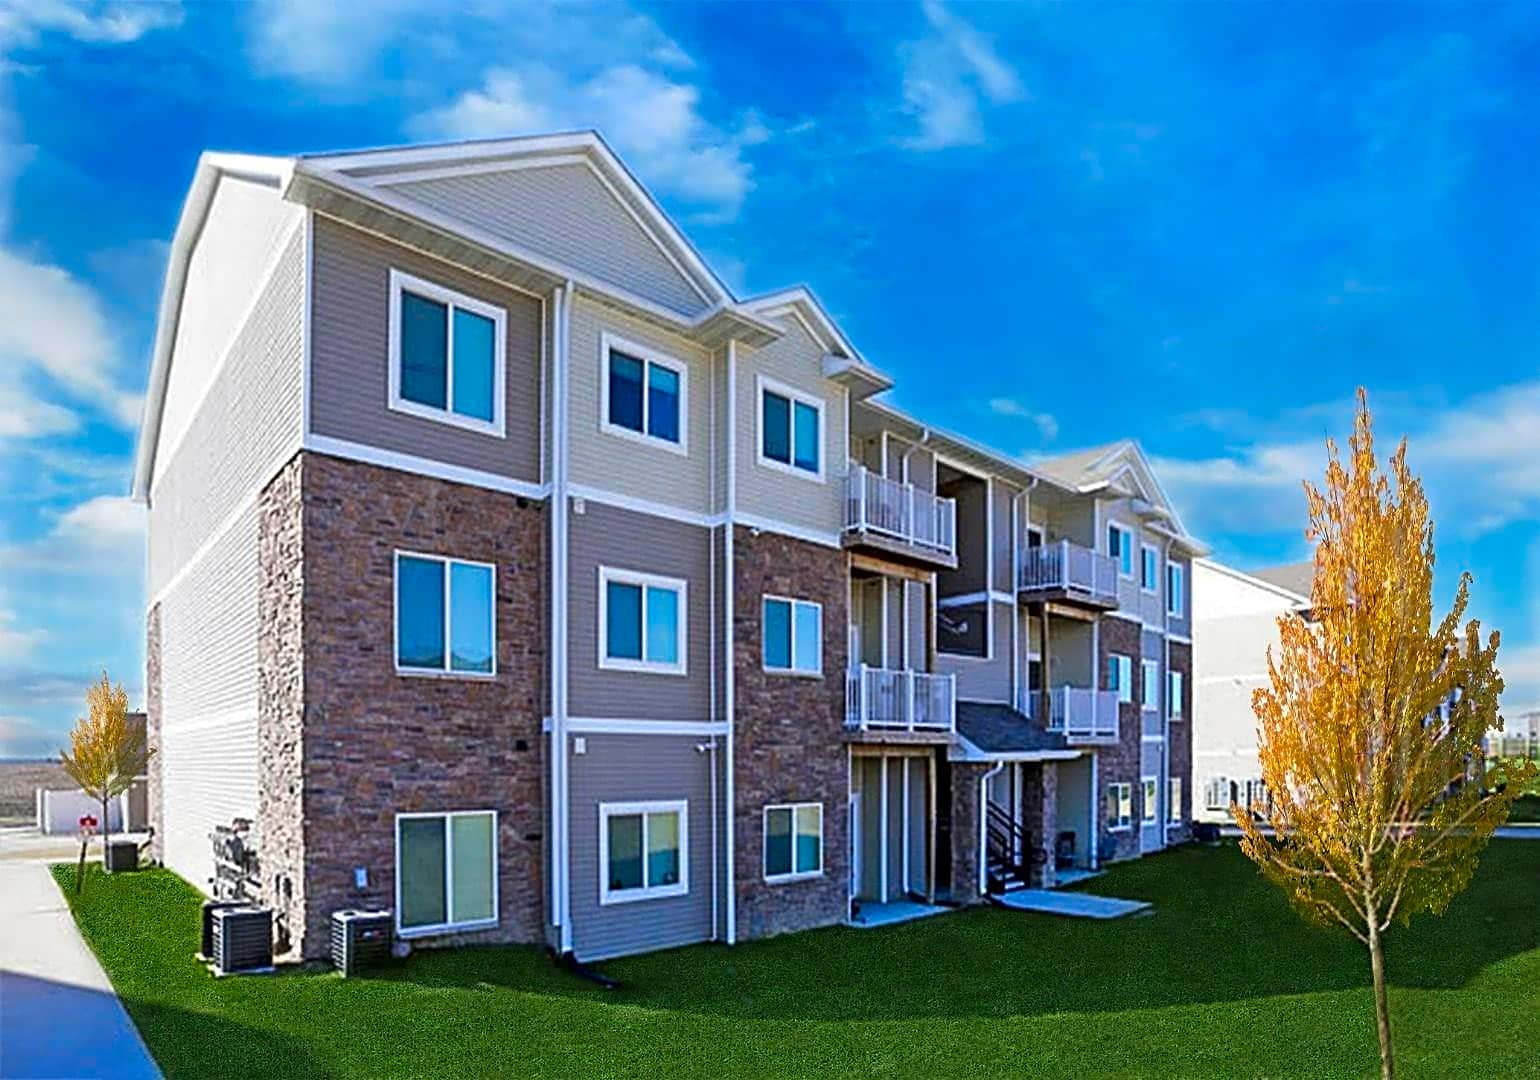 Apartments Near Aveda Institute-Des Moines Johnston Heights for Aveda Institute-Des Moines Students in West Des Moines, IA